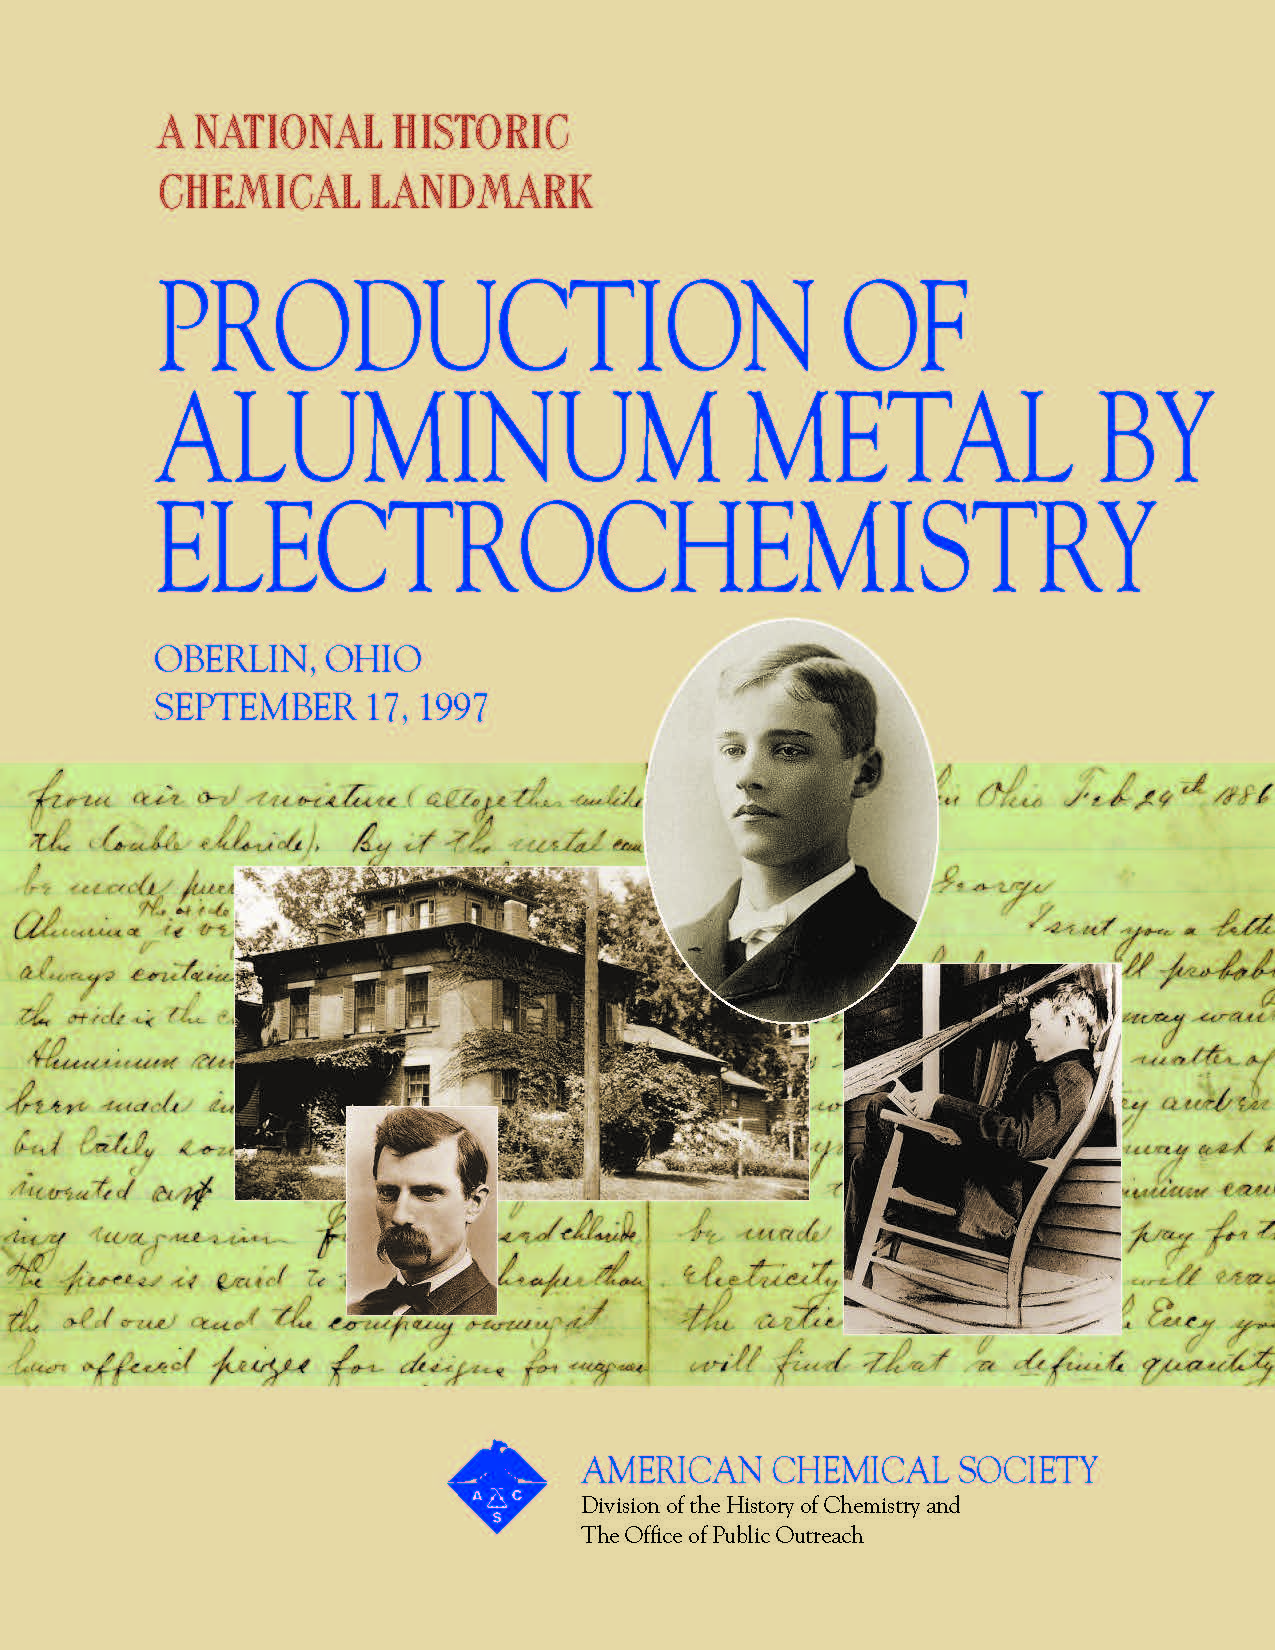 """Production of Aluminum Metal by Electrochemistry"" commemorative booklet"